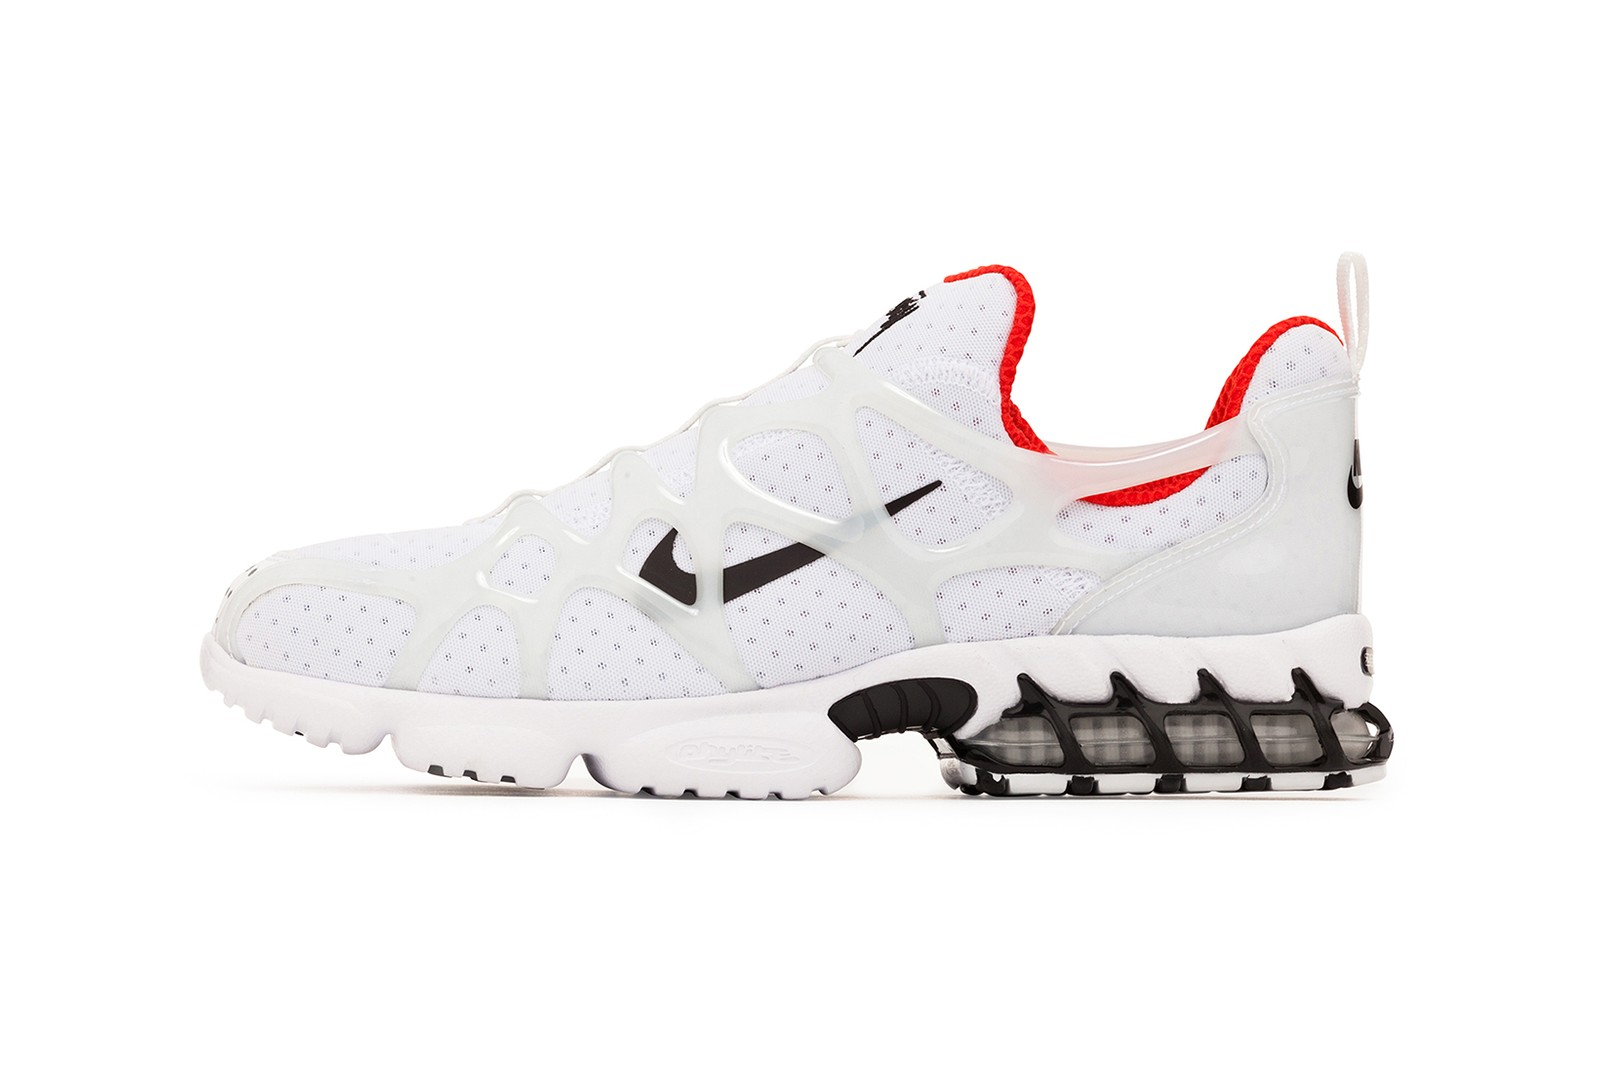 nike stussy collaboration air zoom kukini sneakers black white red neon green shoes footwear sneakerhead